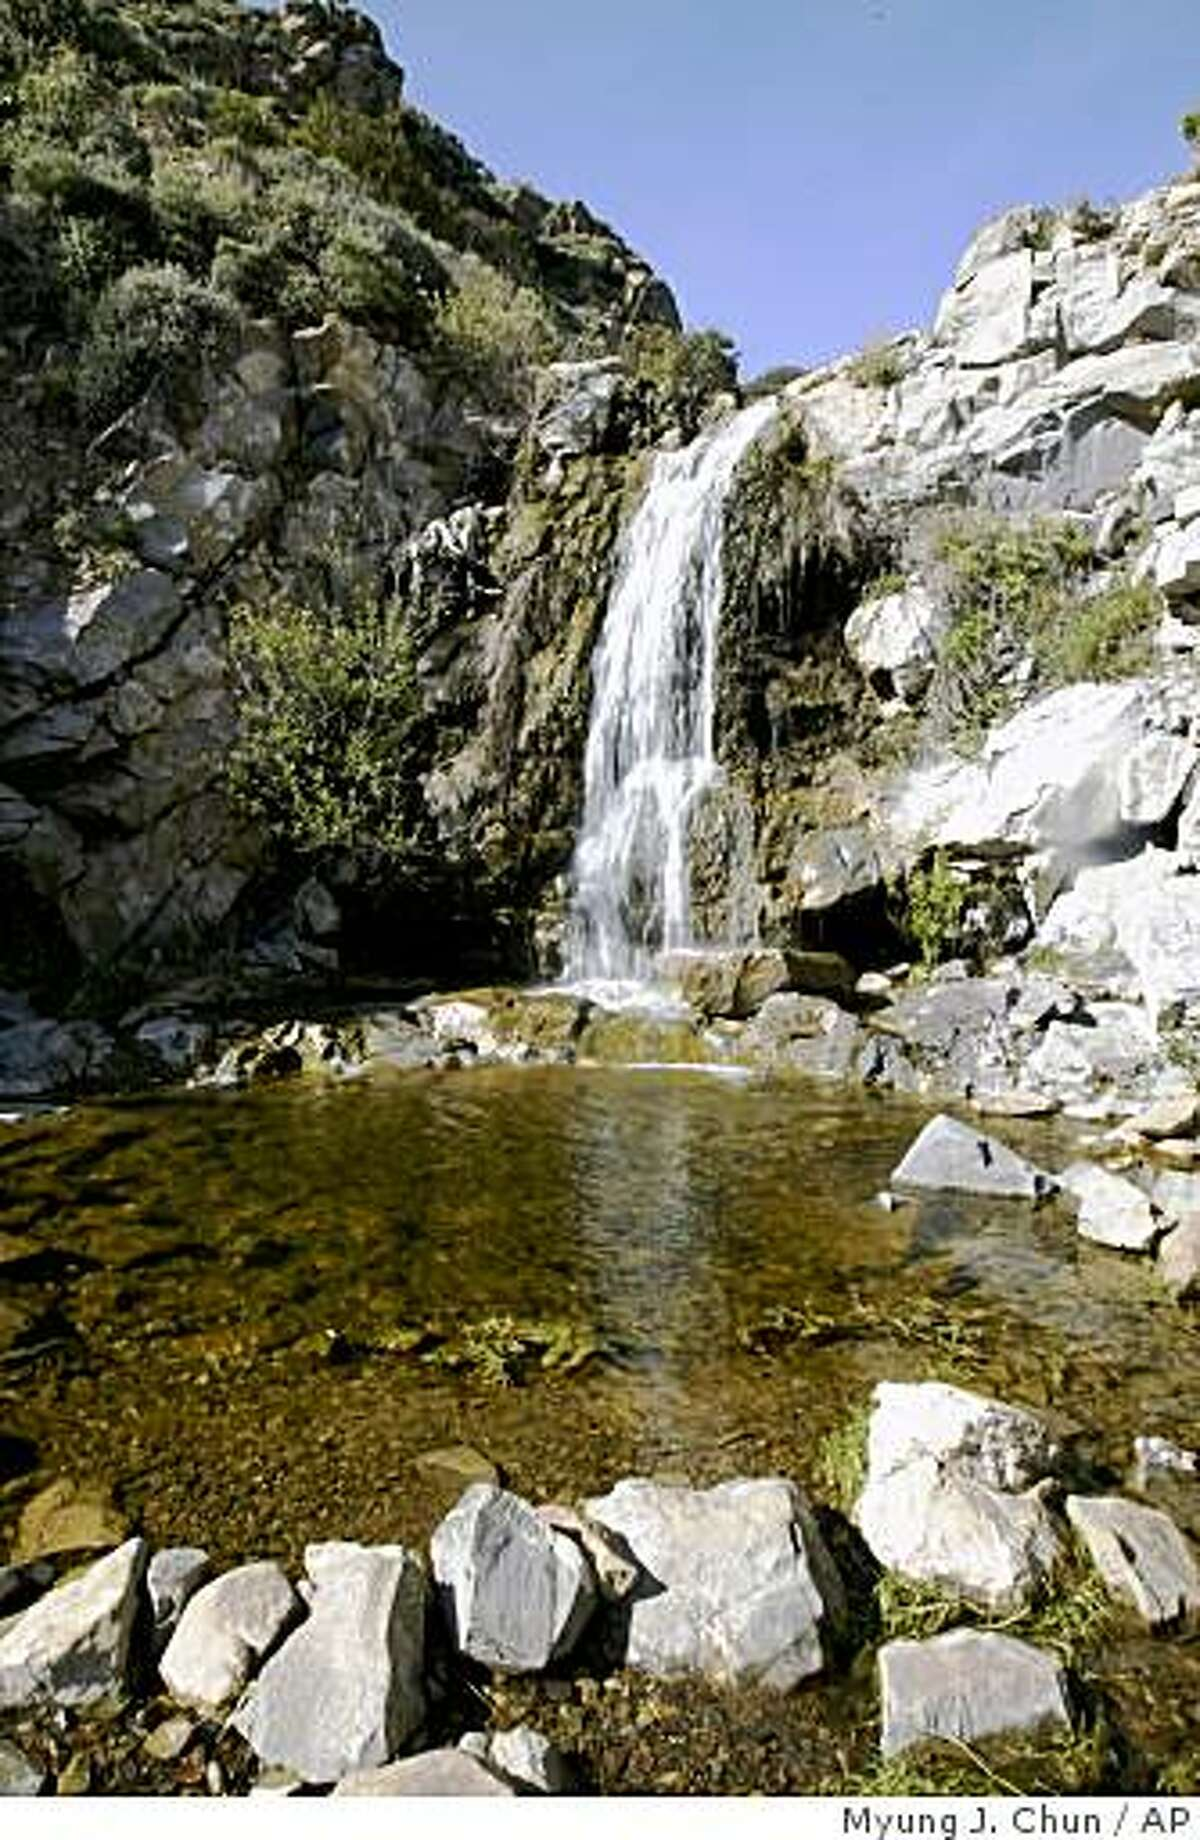 Southern California's La Jolla Canyon Trail passes a stream and a waterfall as it climbs and winds to the La Jolla Valley and its grassland in Point Mugu State Park, March 3, 2005.